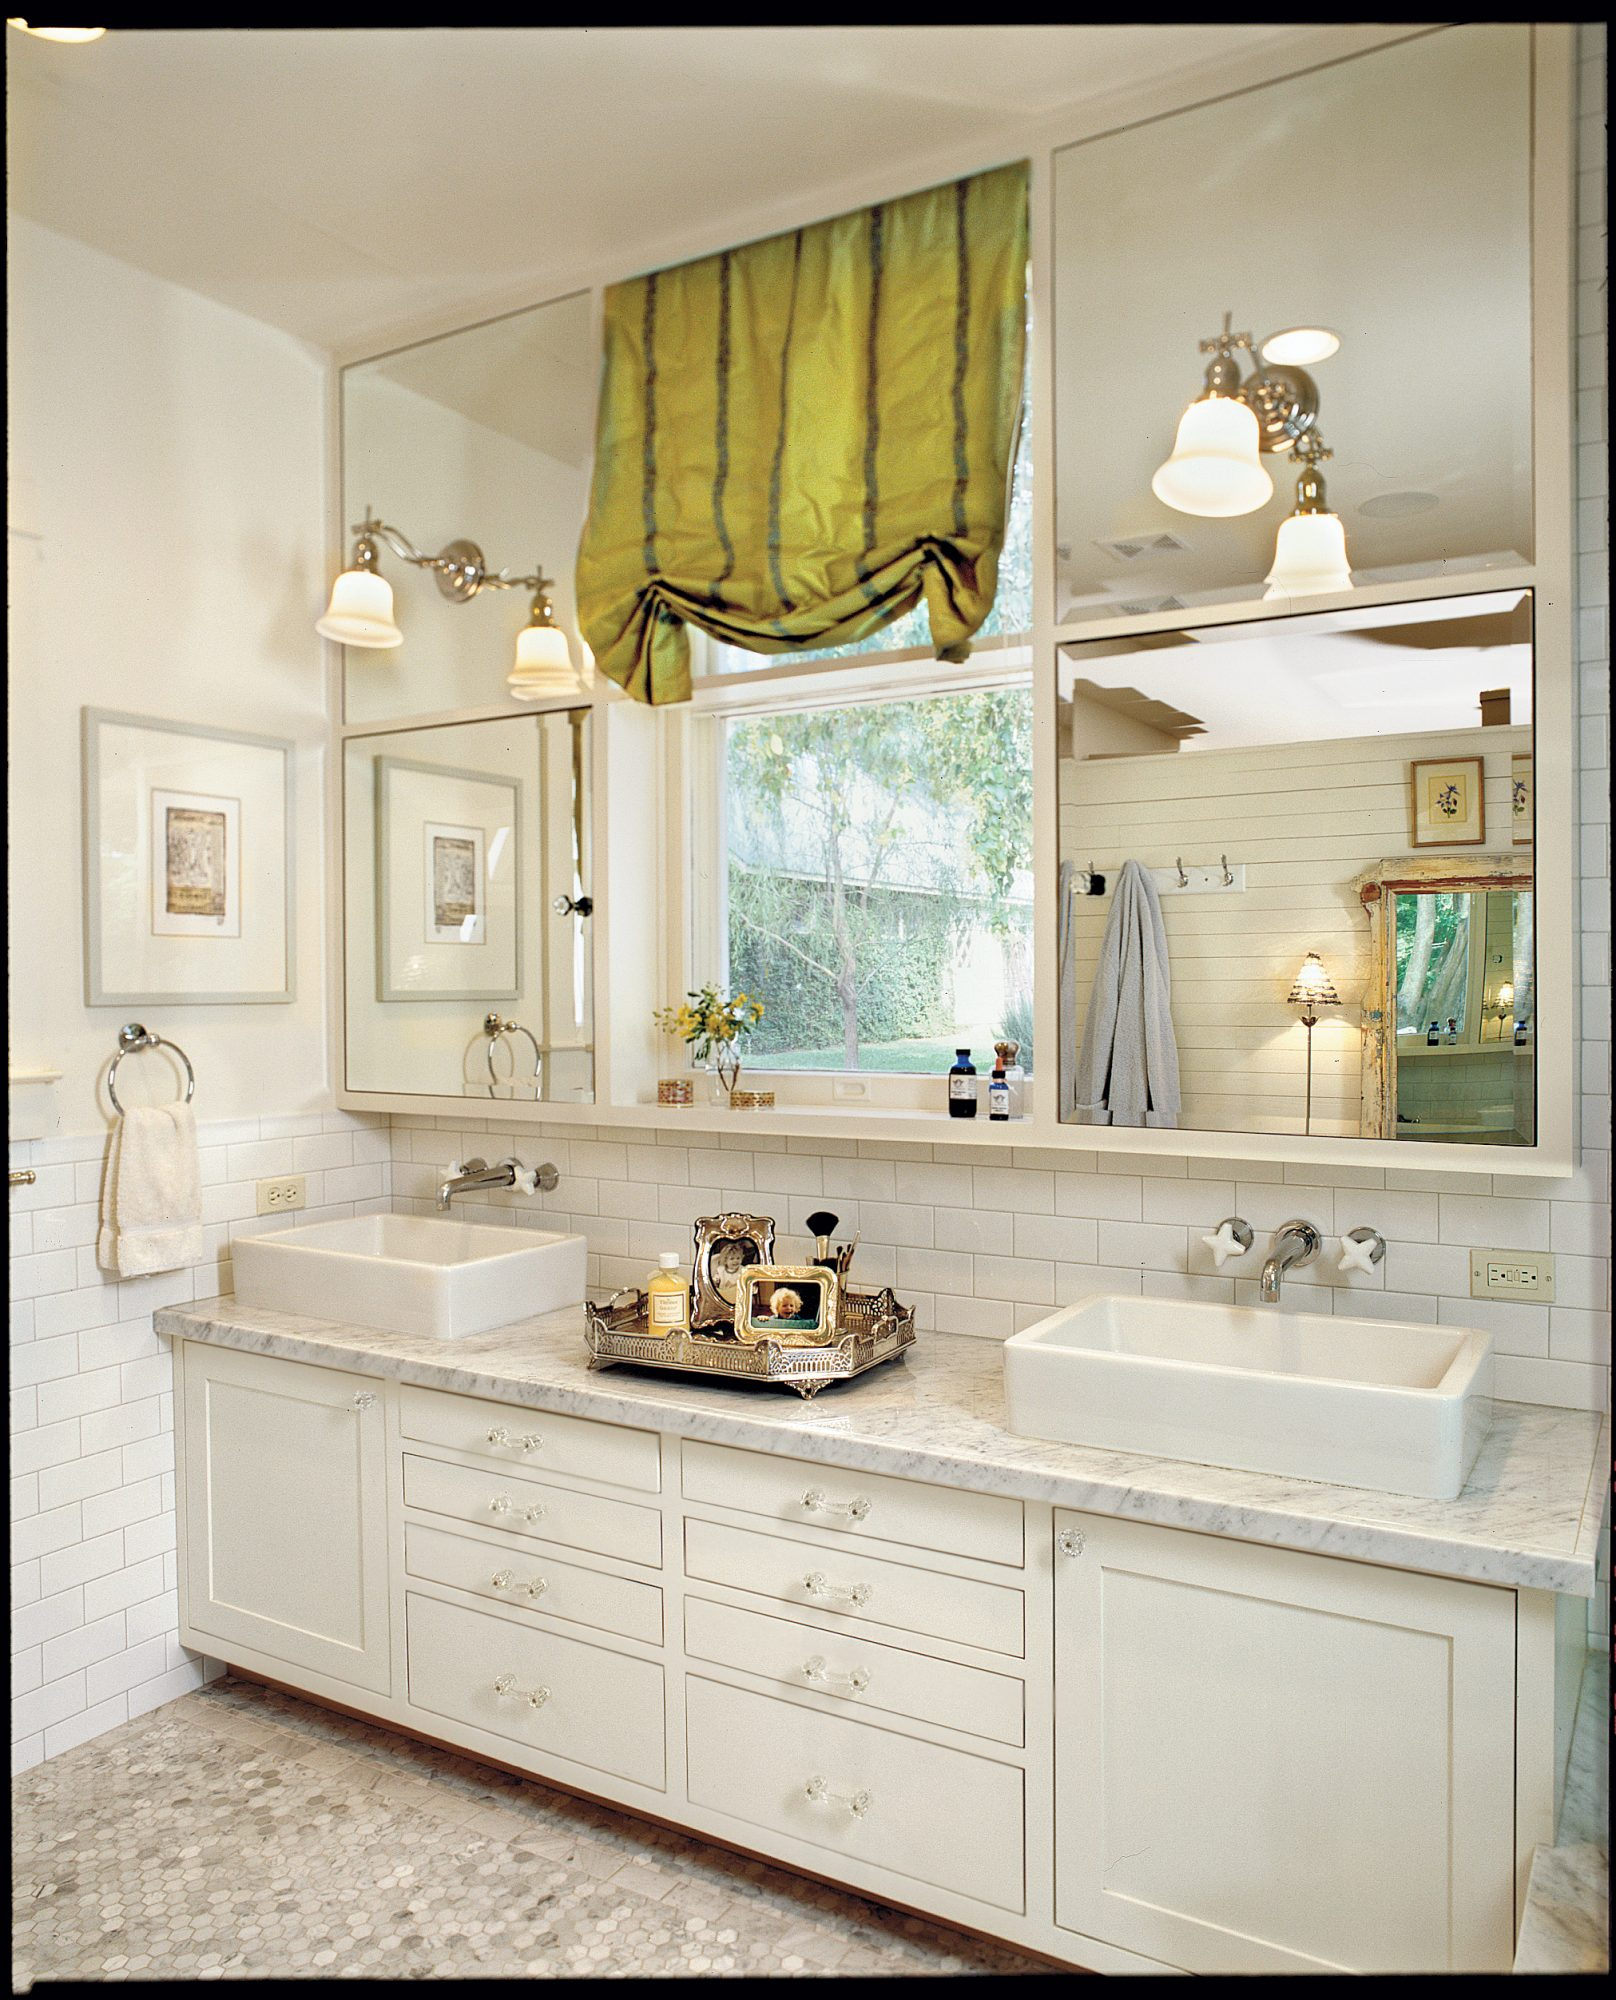 Same Space, New Dream Bath - Southern Living